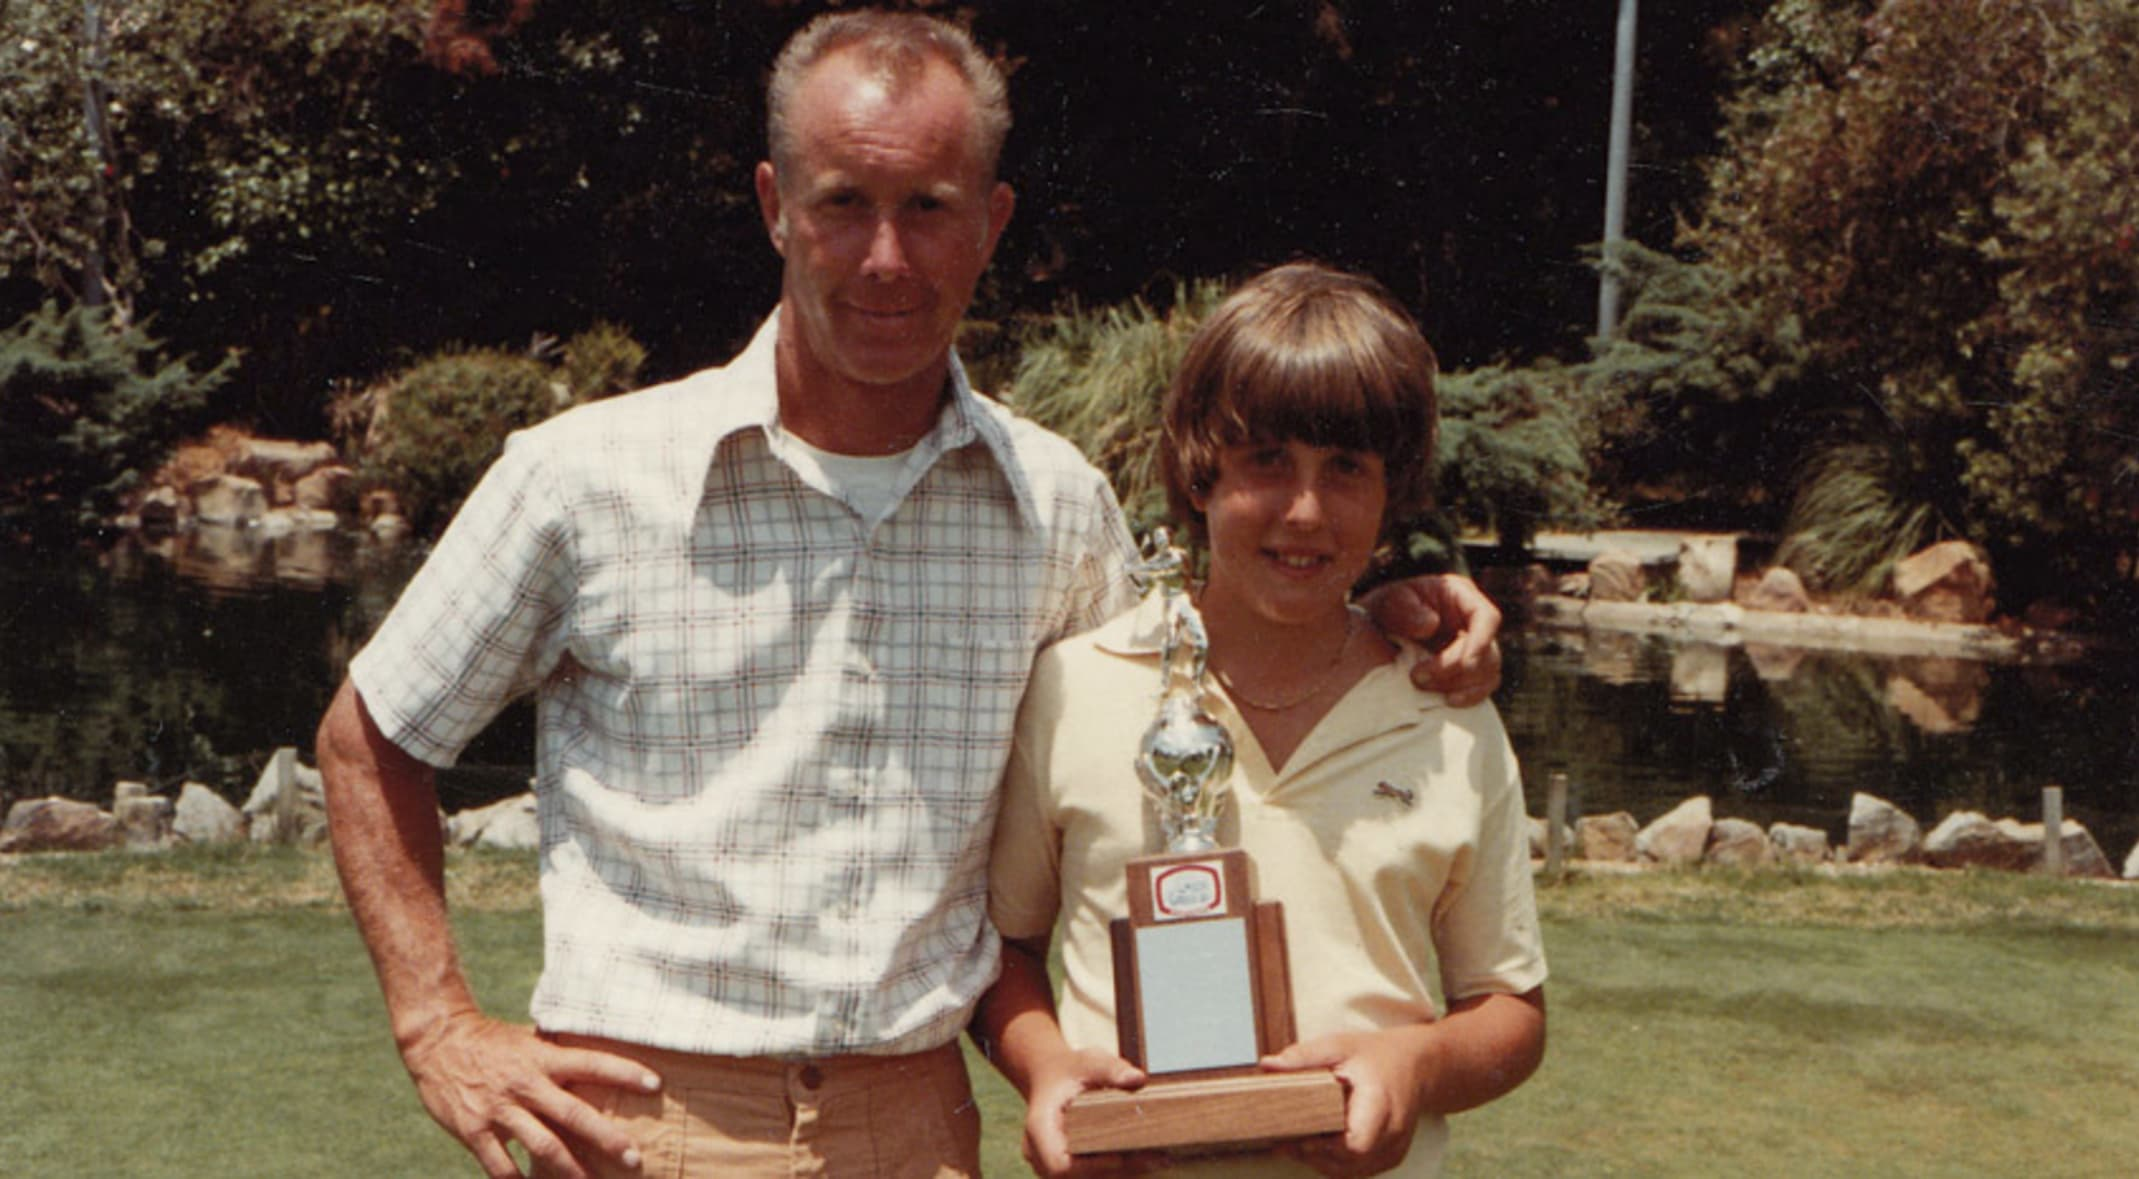 Digging into the archives on Father's Day